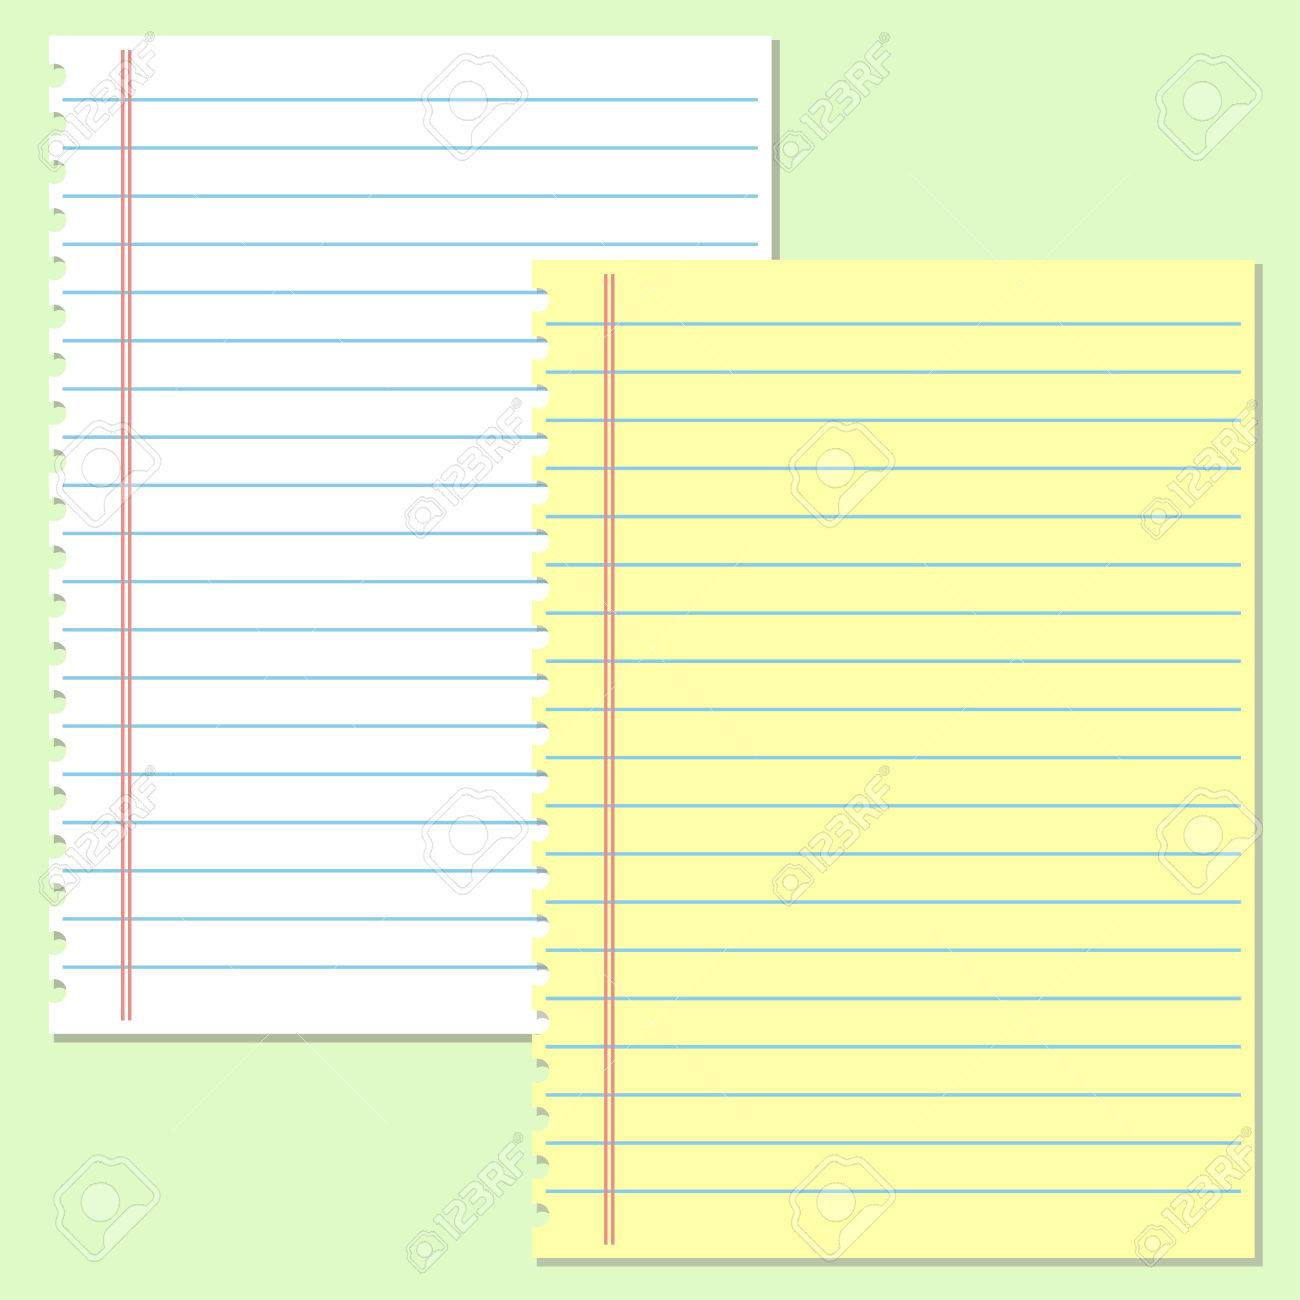 yellow and white lined paper. school notebook paper royalty free